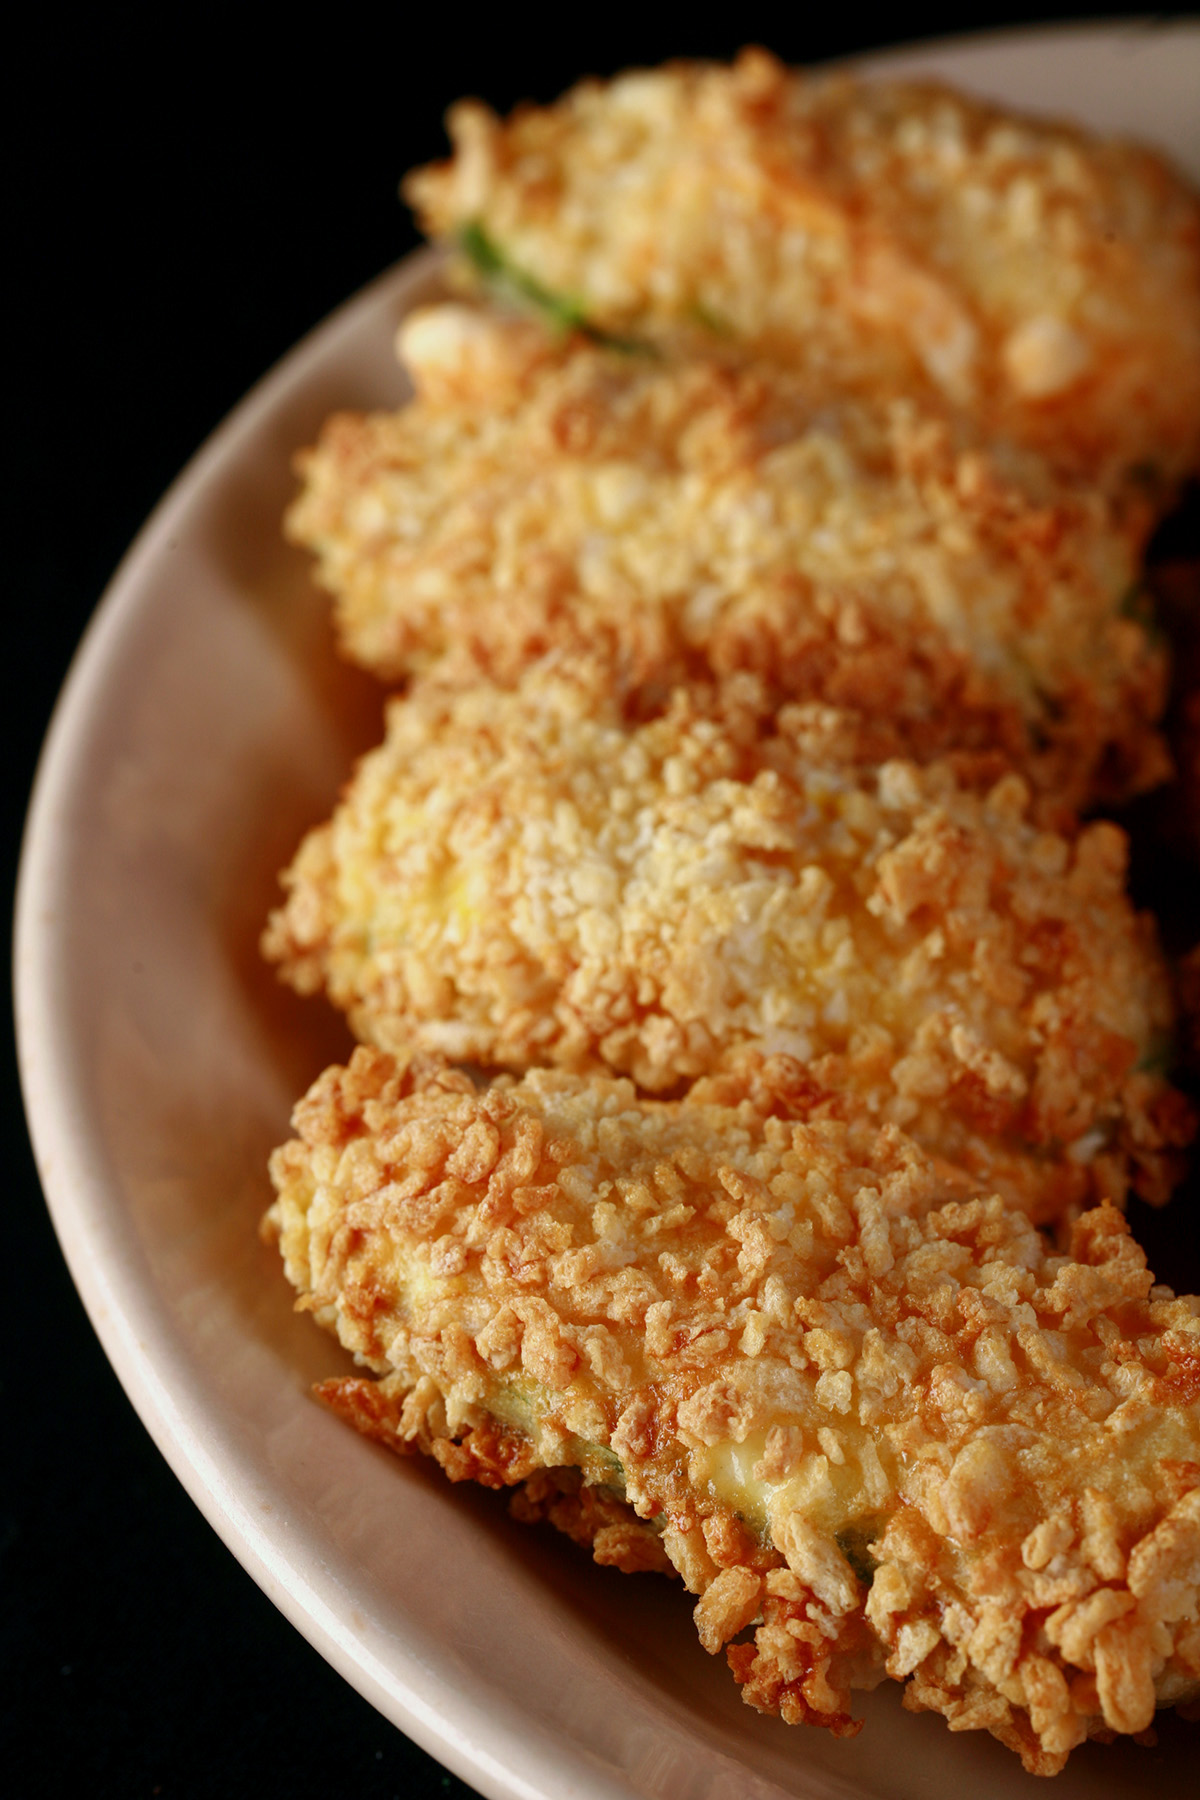 Air fried gluten free jalapeno poppers on a small ivory plate. These 4 are coated in gluten-free panko crumbs.